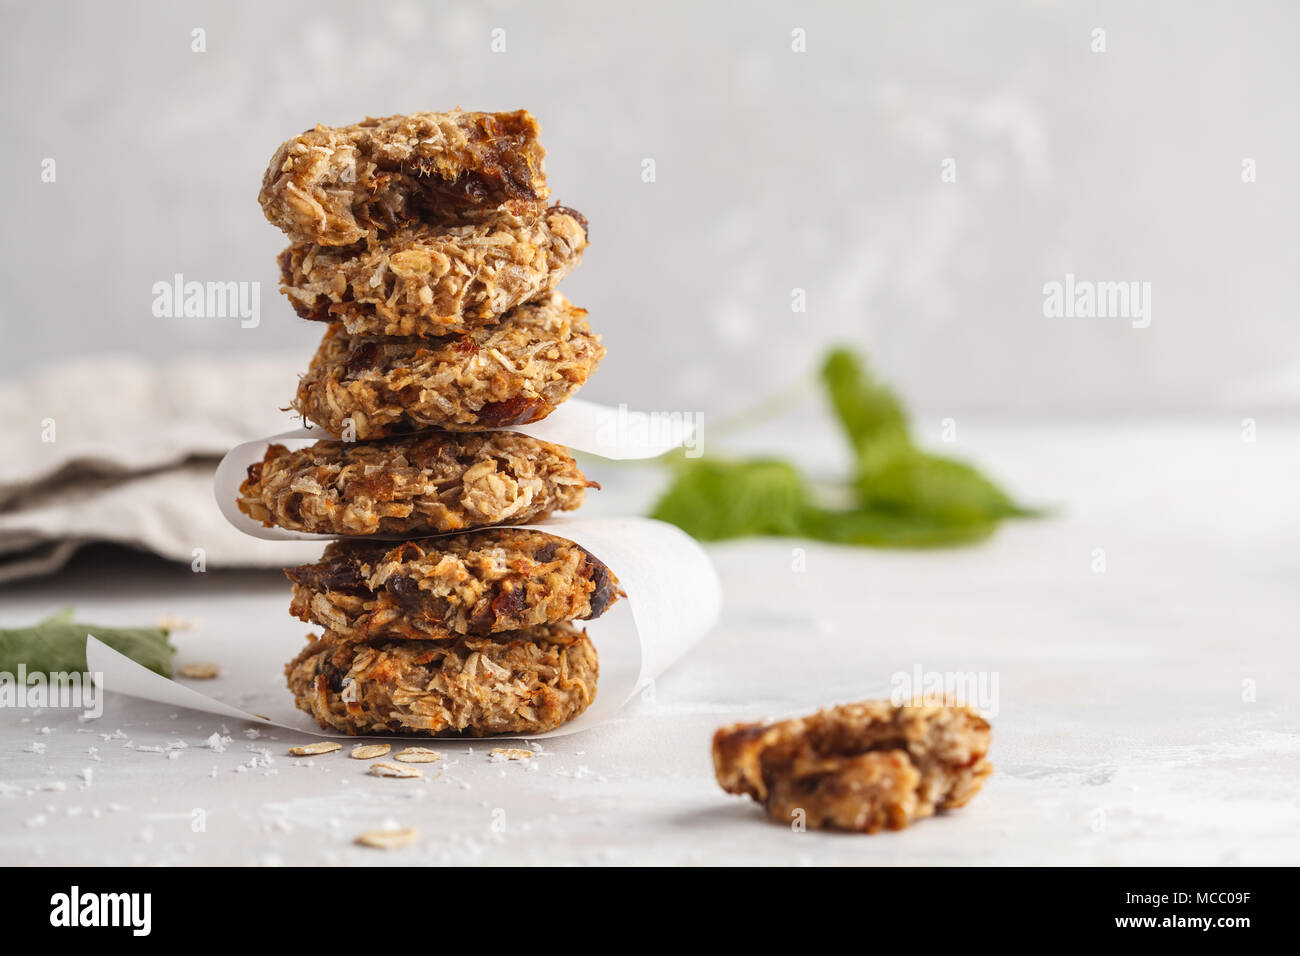 Vegan oatmeal cookies with dates and a banana. Healthy vegan detox dessert on a light background - Stock Image